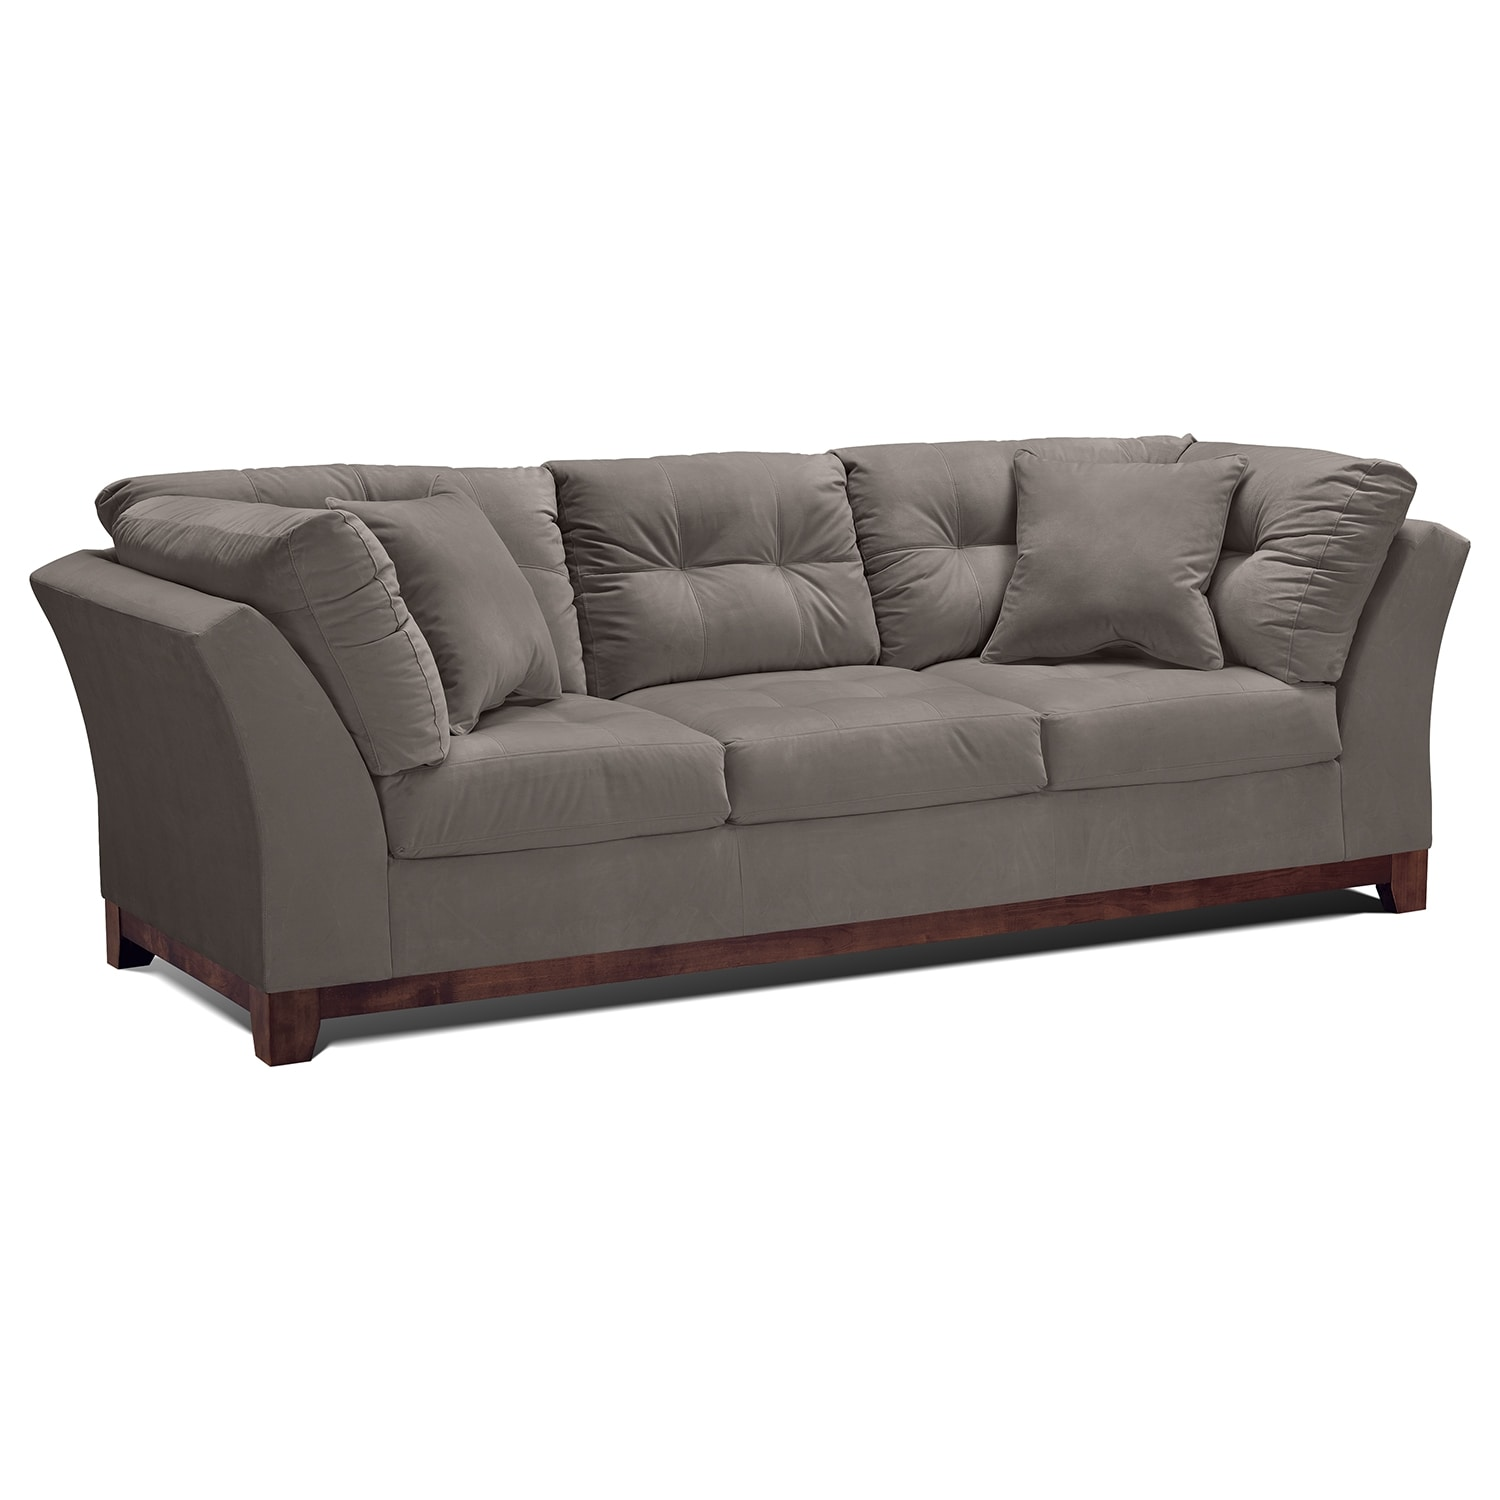 Living Room Furniture - Solace Gray Sofa